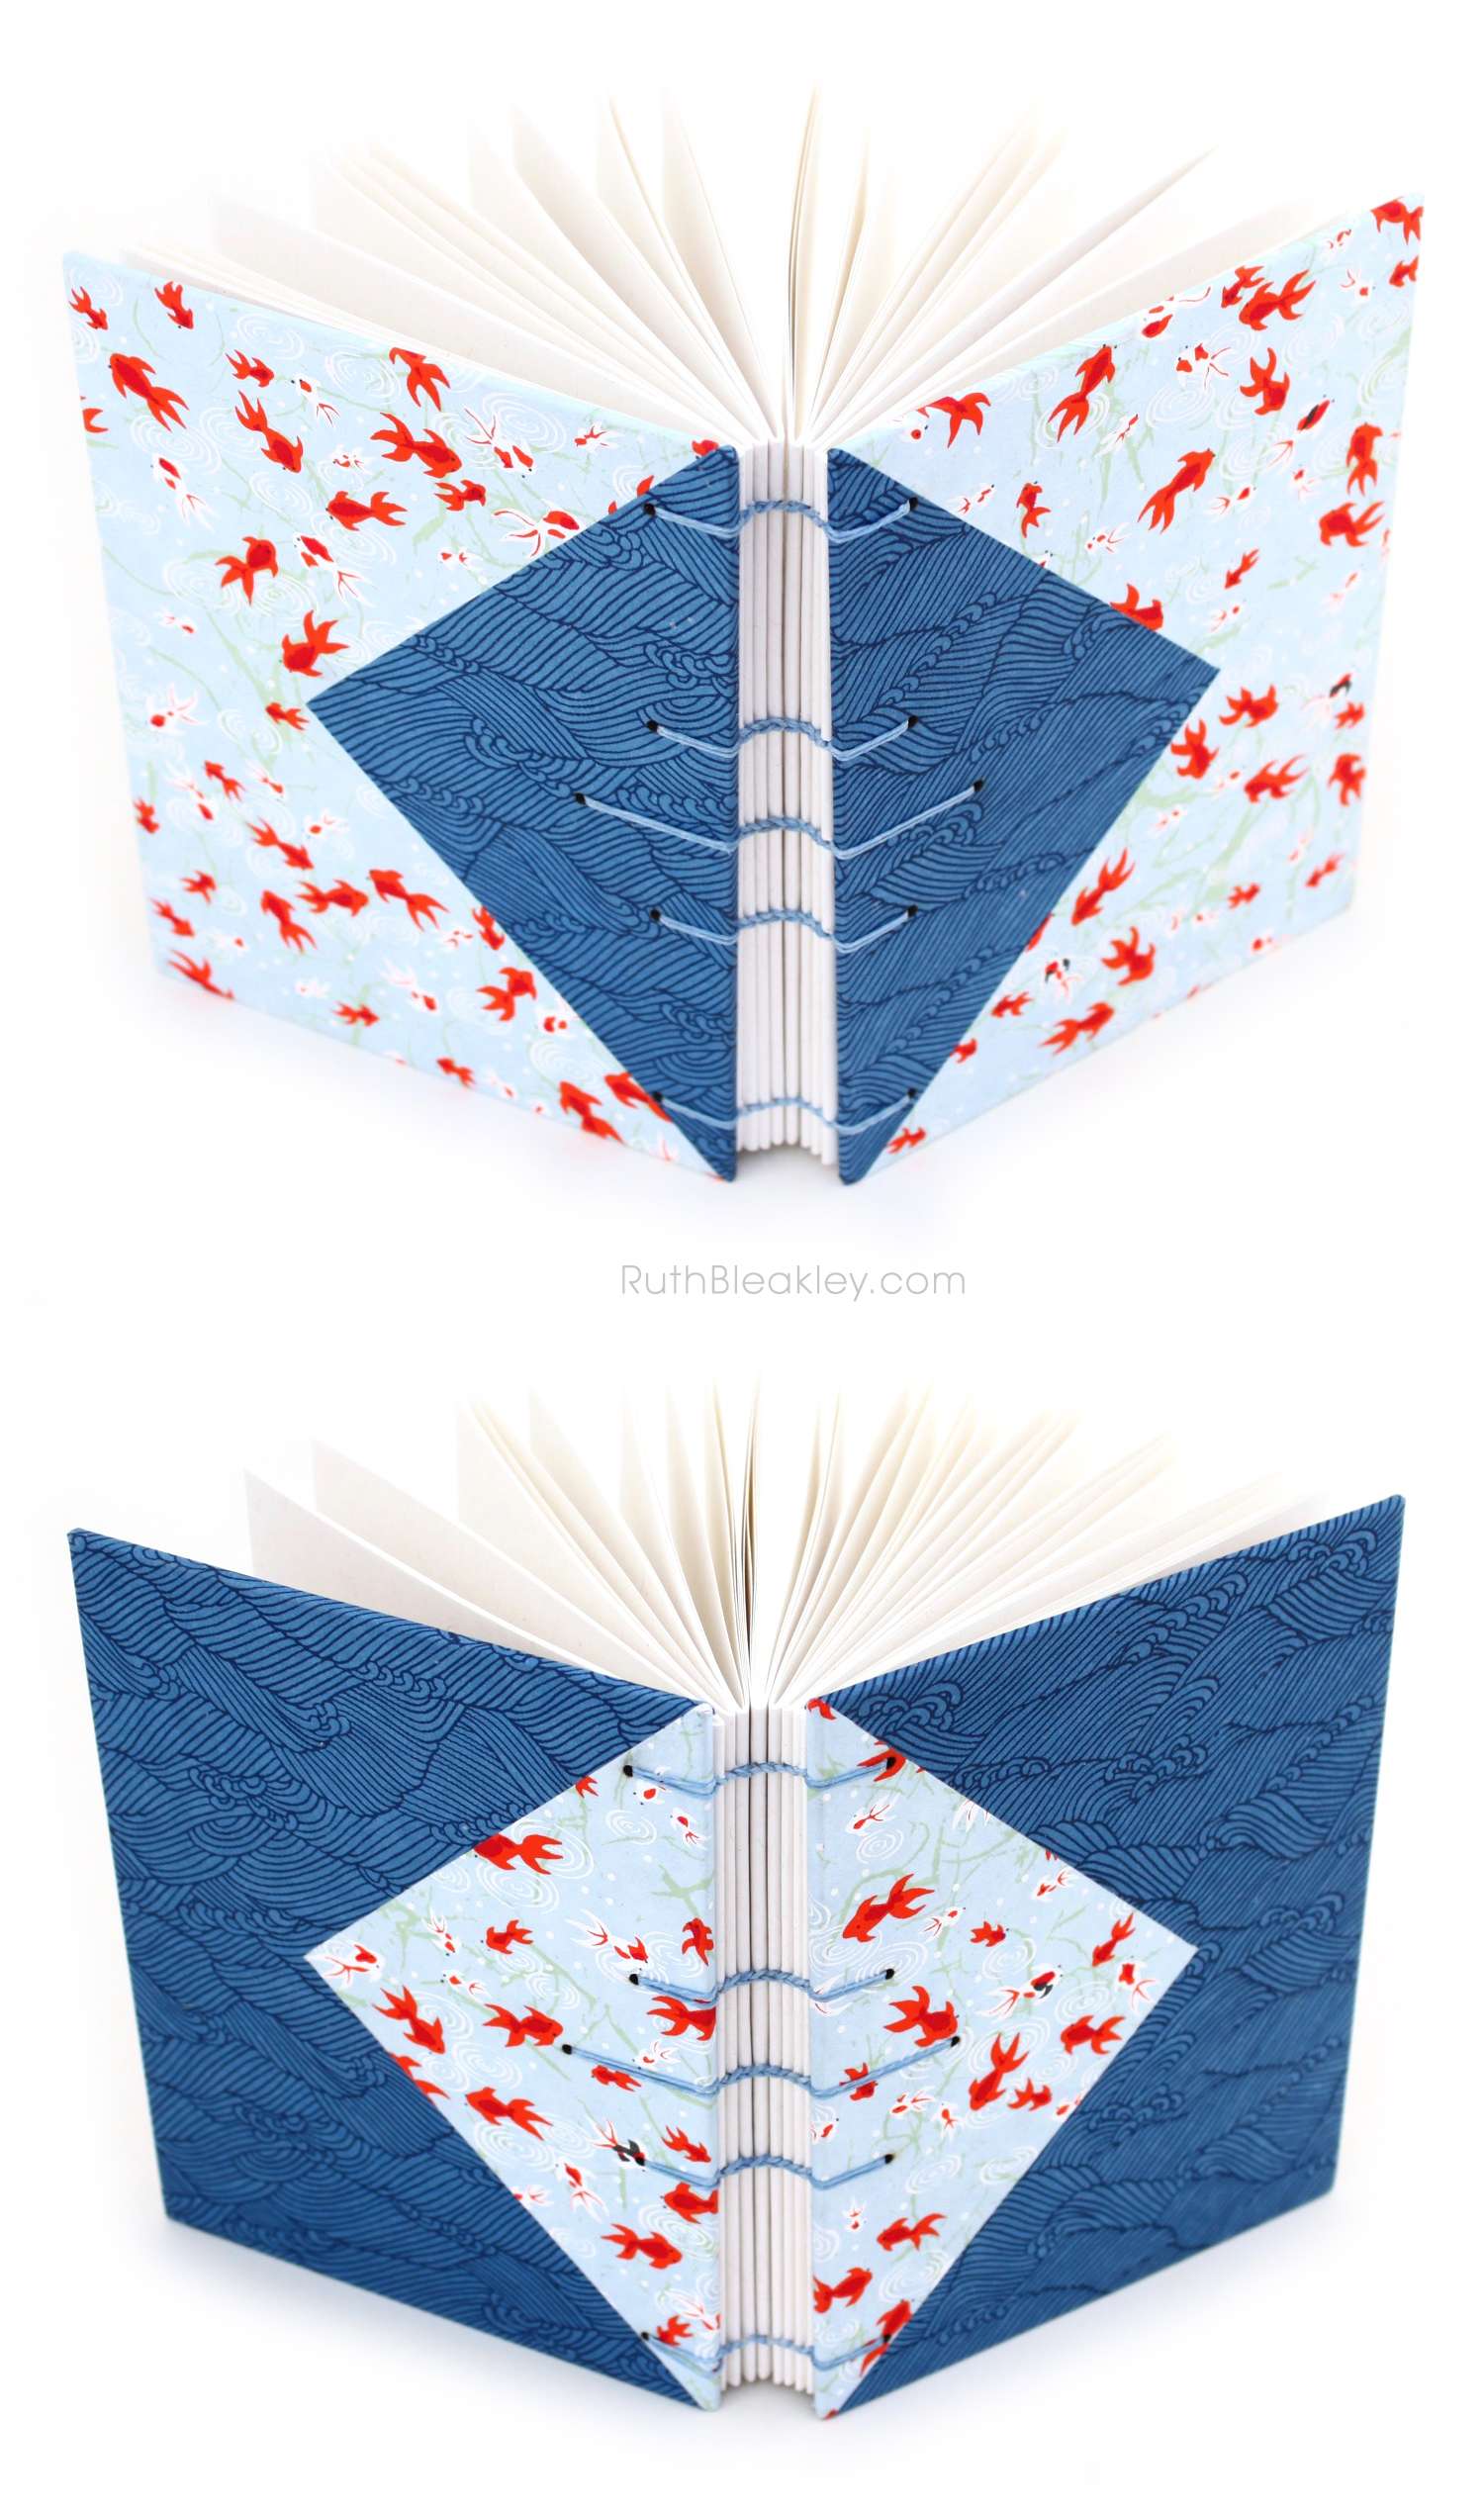 Twin Journals - Blue Waves and Goldfish - colorful Japanese paper books made by Ruth Bleakley